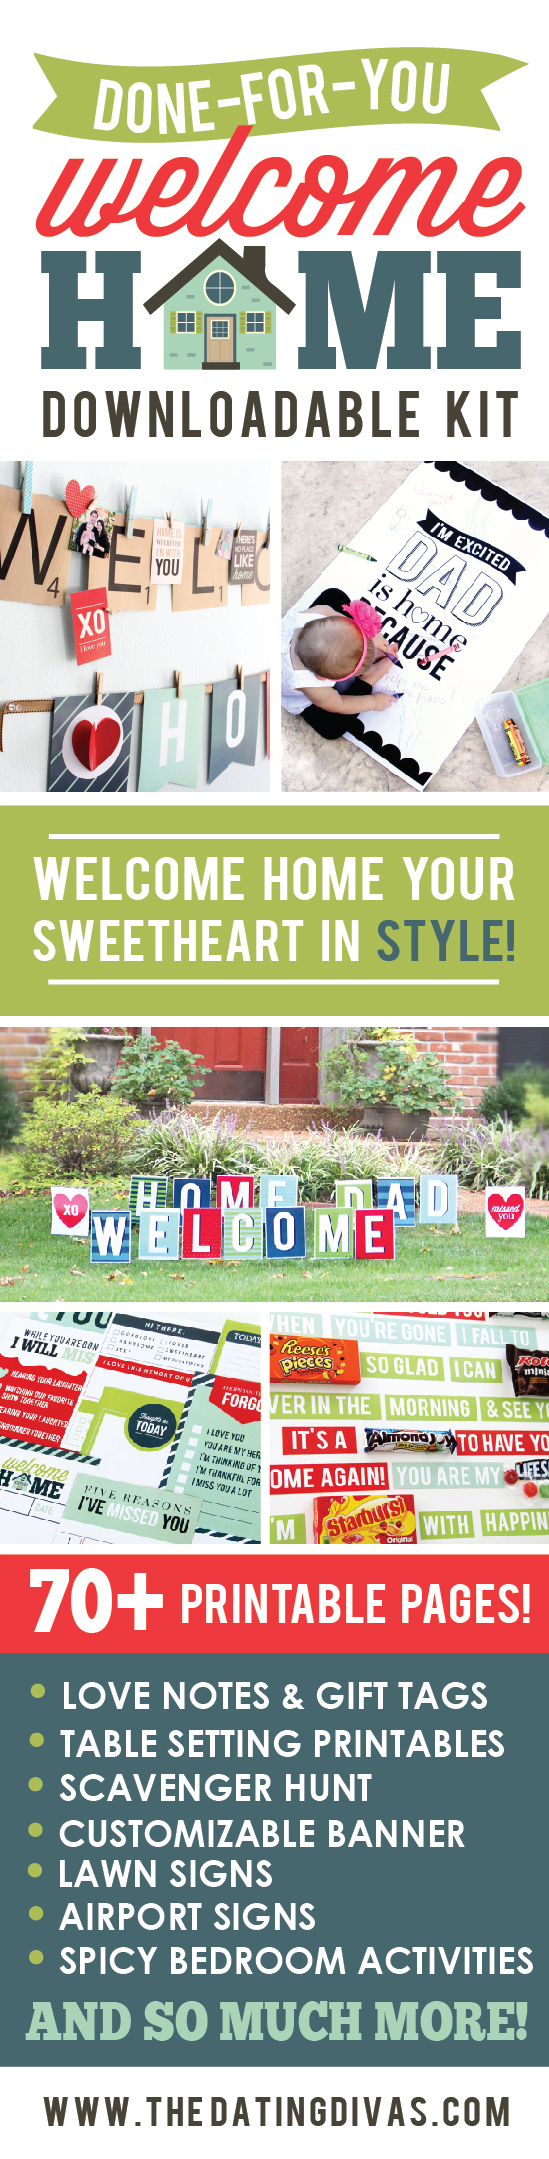 Welcome Home Printable Kit - If you're loved one has been away, welcome them home in style with this seventy page kit!